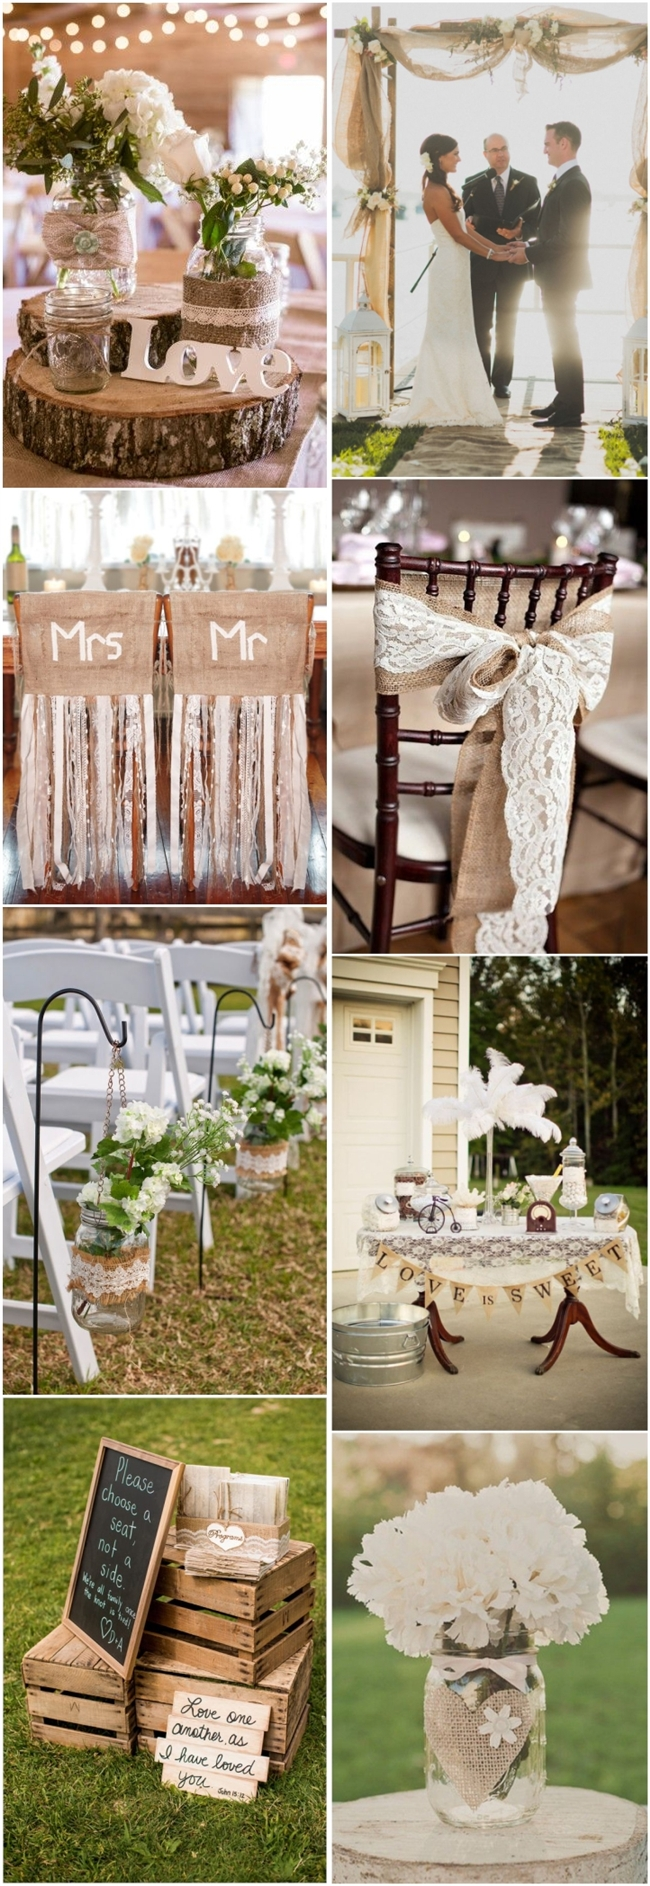 45 chic rustic burlap lace wedding ideas and inspiration country themed wedding dresses country rustic wedding ideas burlap lace wedding theme ideas